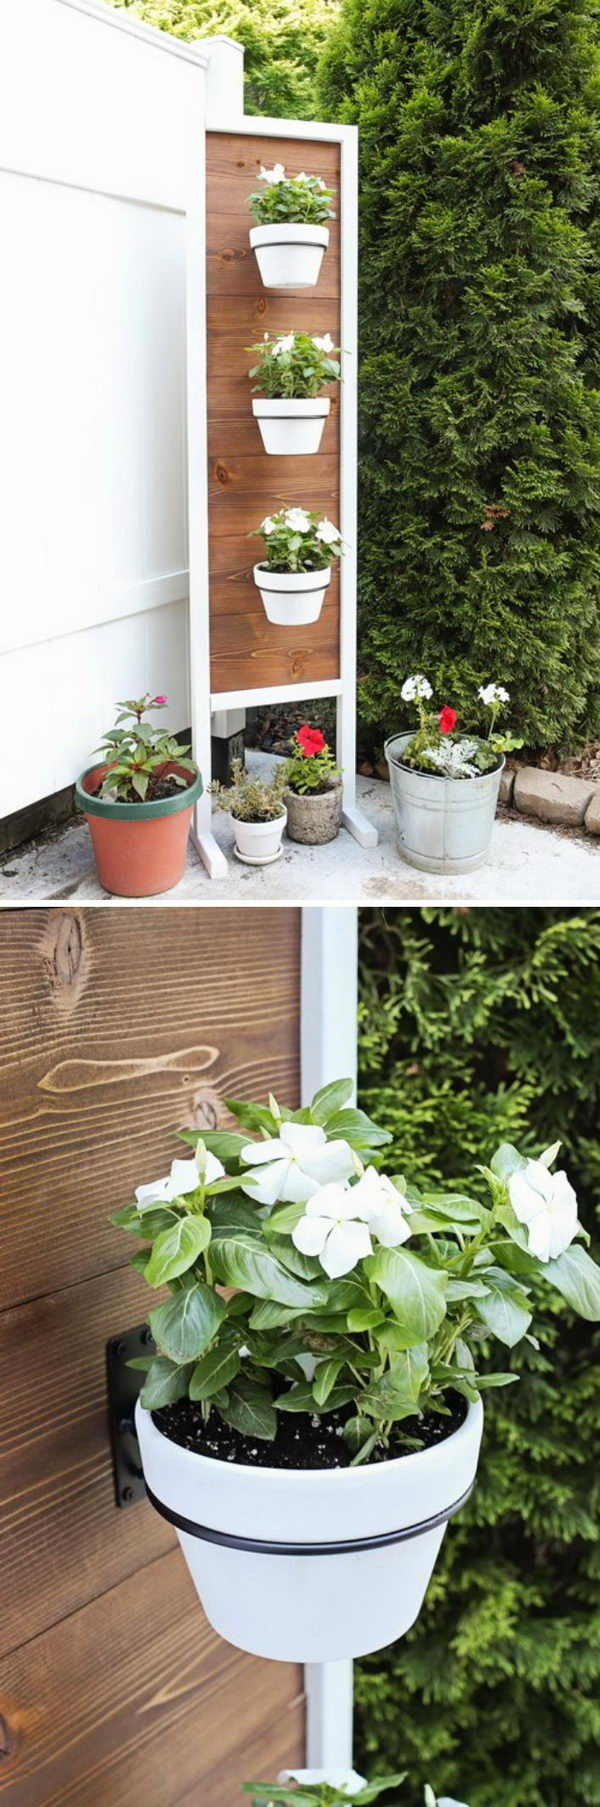 25+ DIY Plant Stands With Thrift Store Finds - Hative on Plant Stand Ideas  id=83128